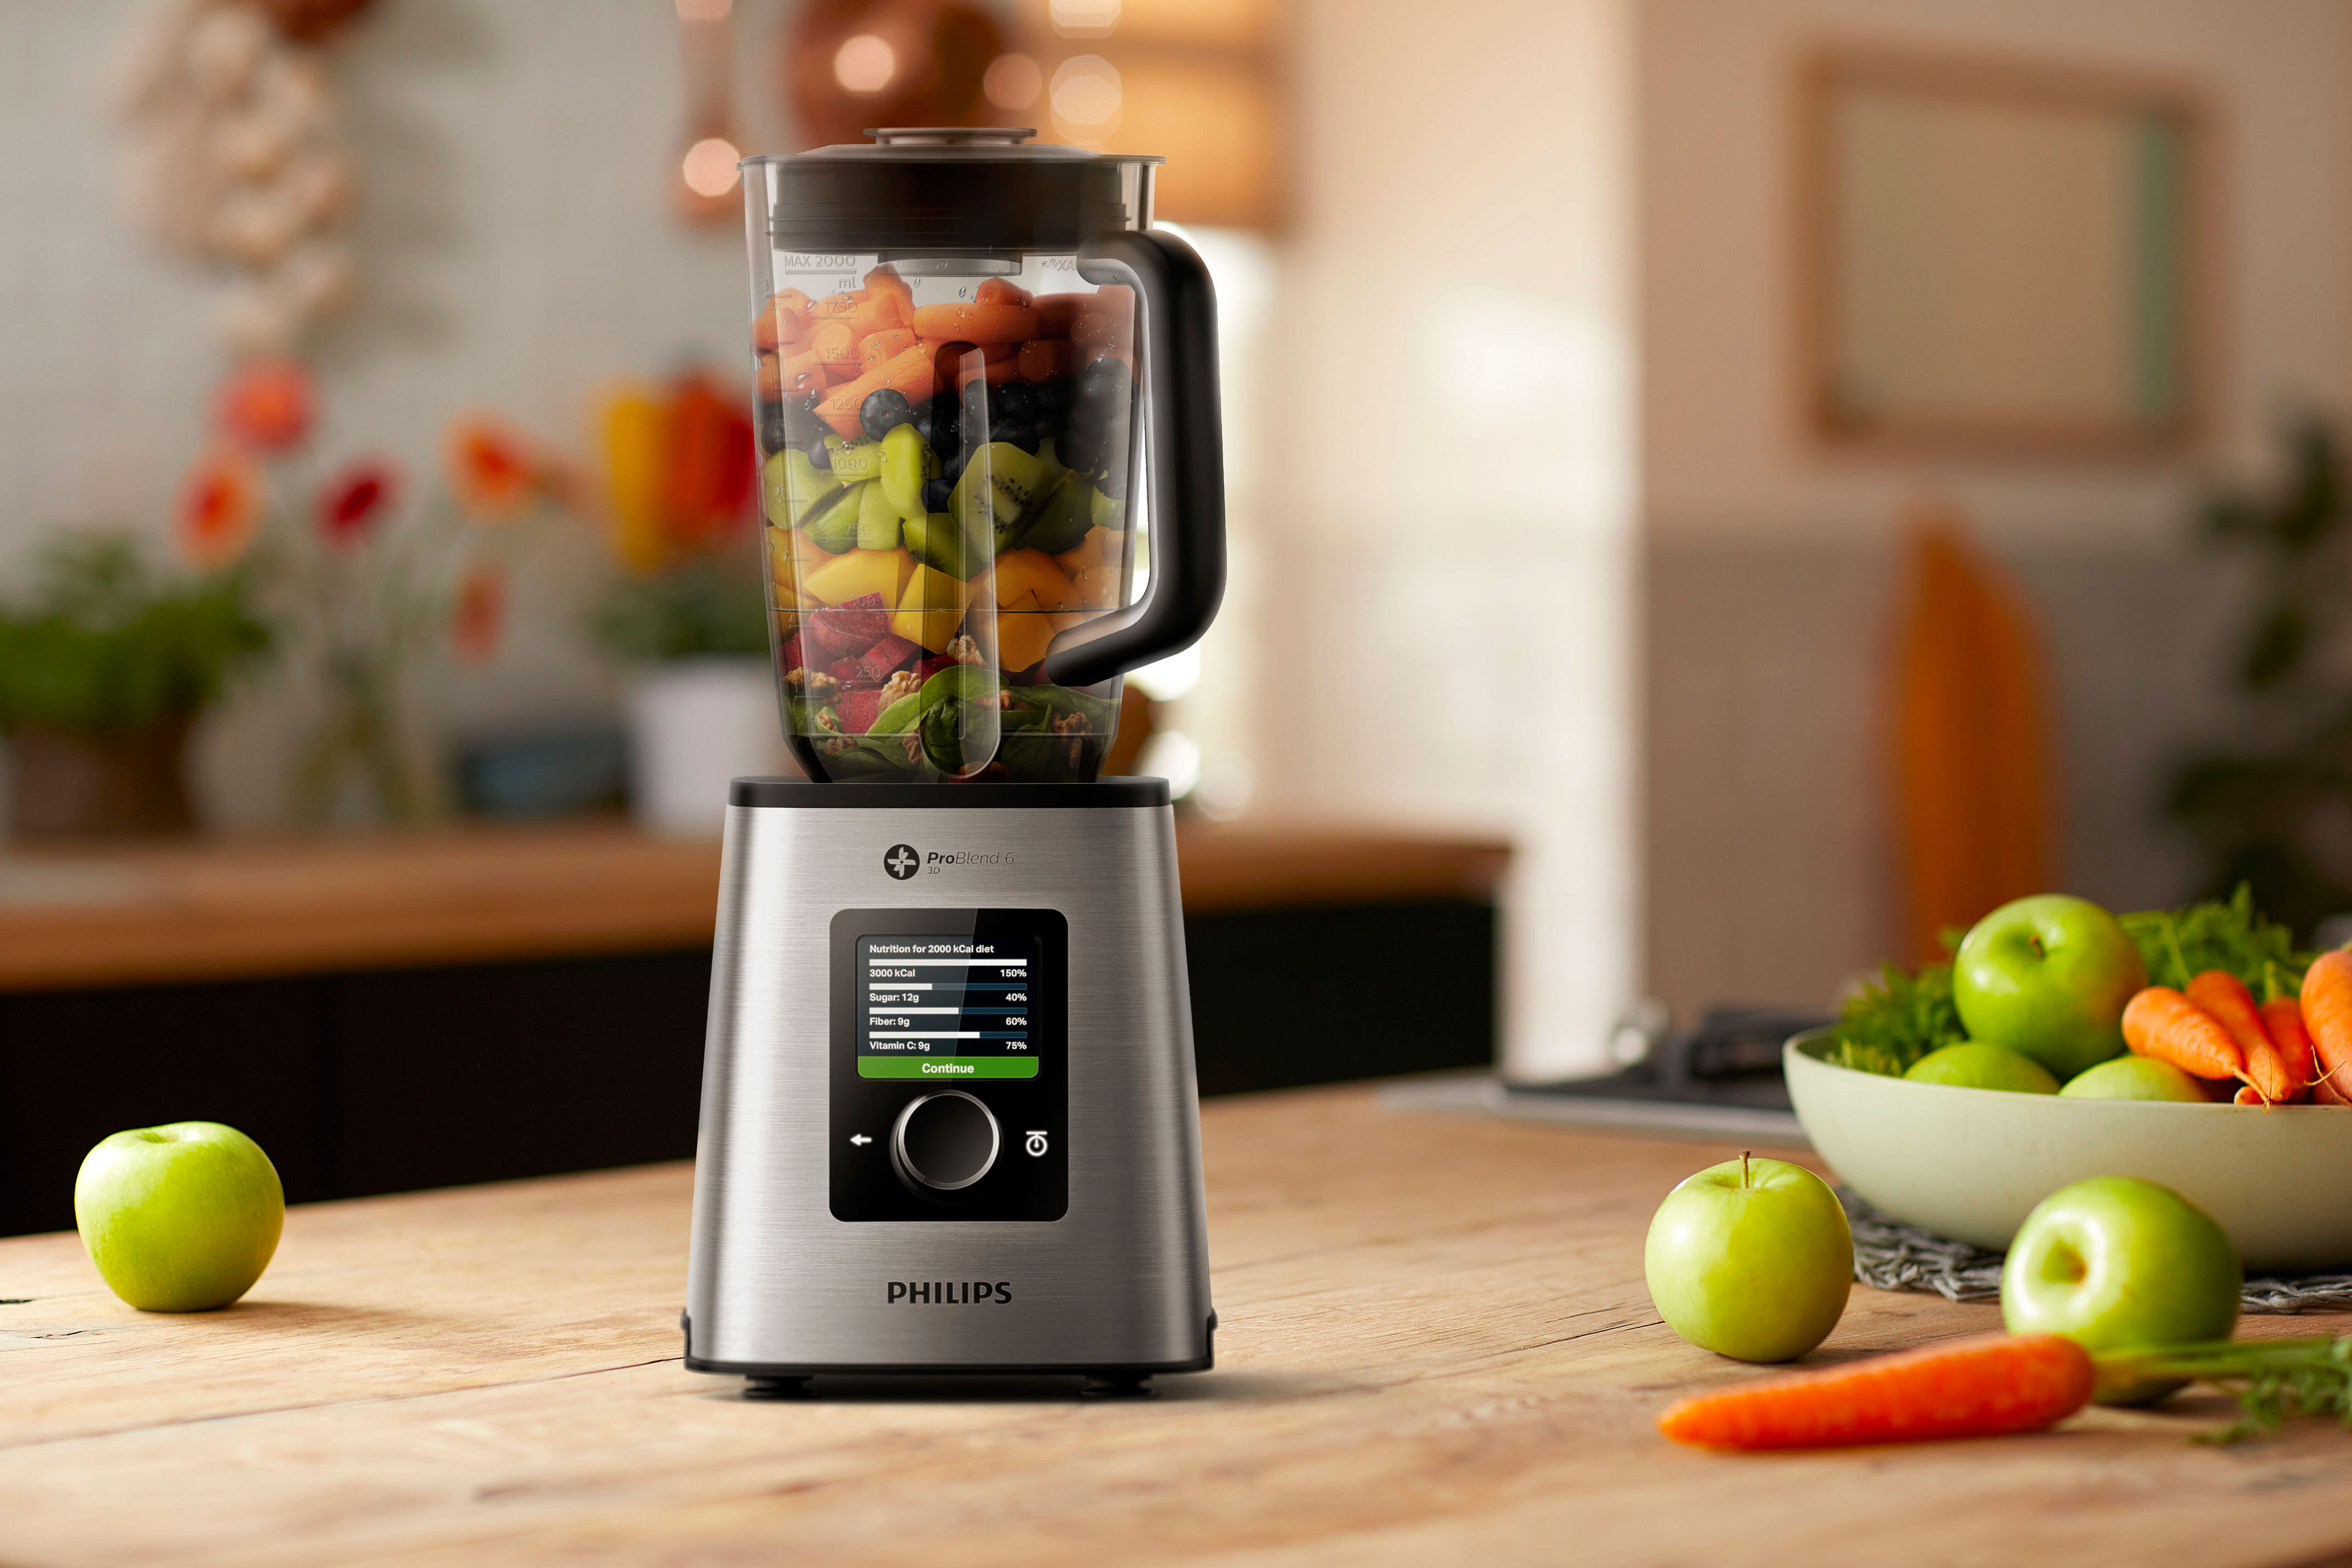 Philips new High Speed Connected Blender - News | Philips